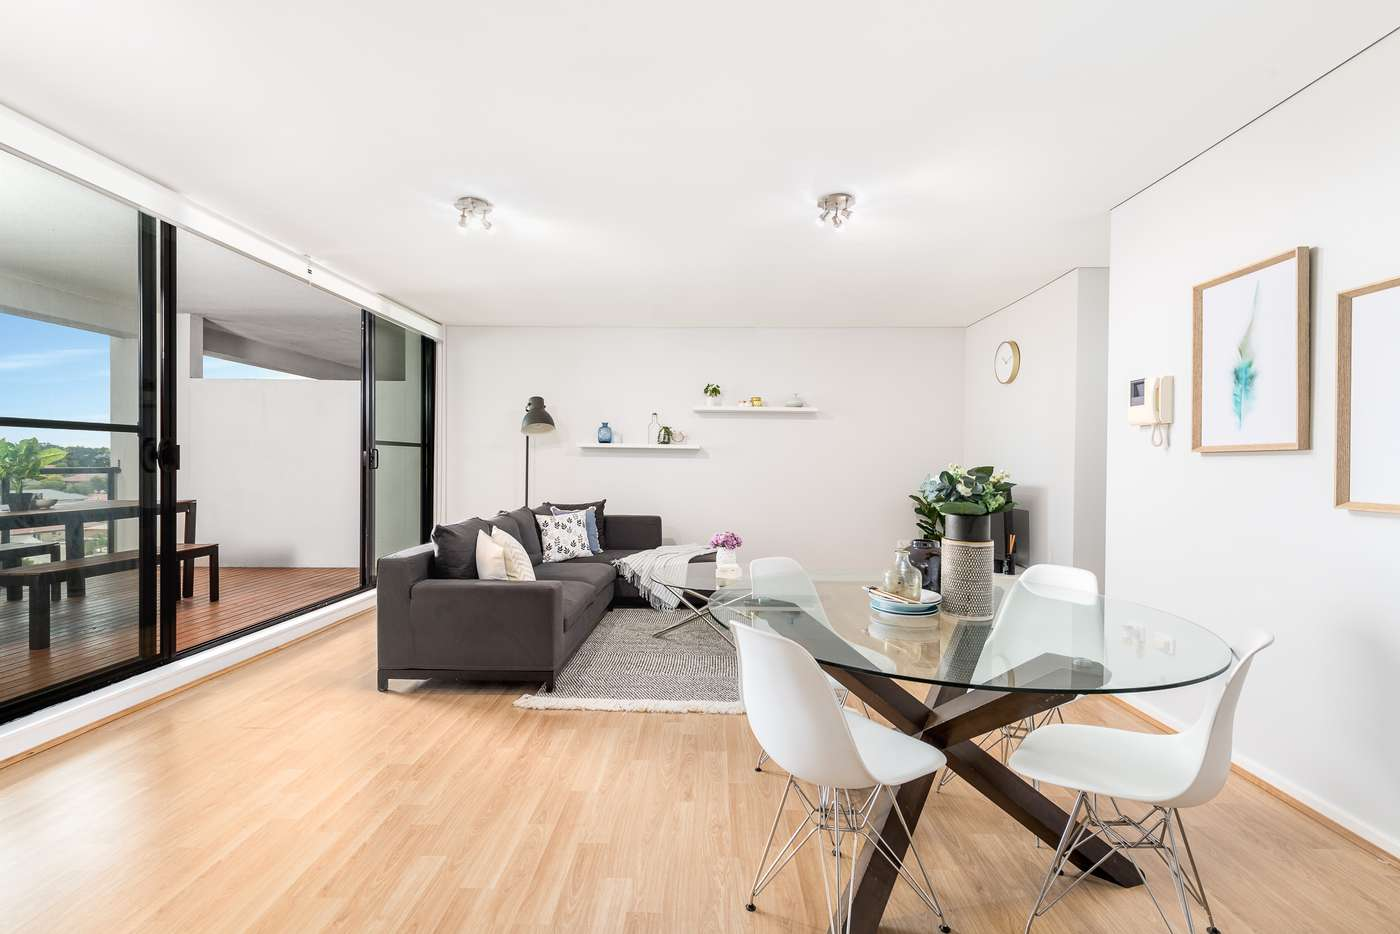 Main view of Homely apartment listing, 29/13-19 Bryant Street, Rockdale NSW 2216